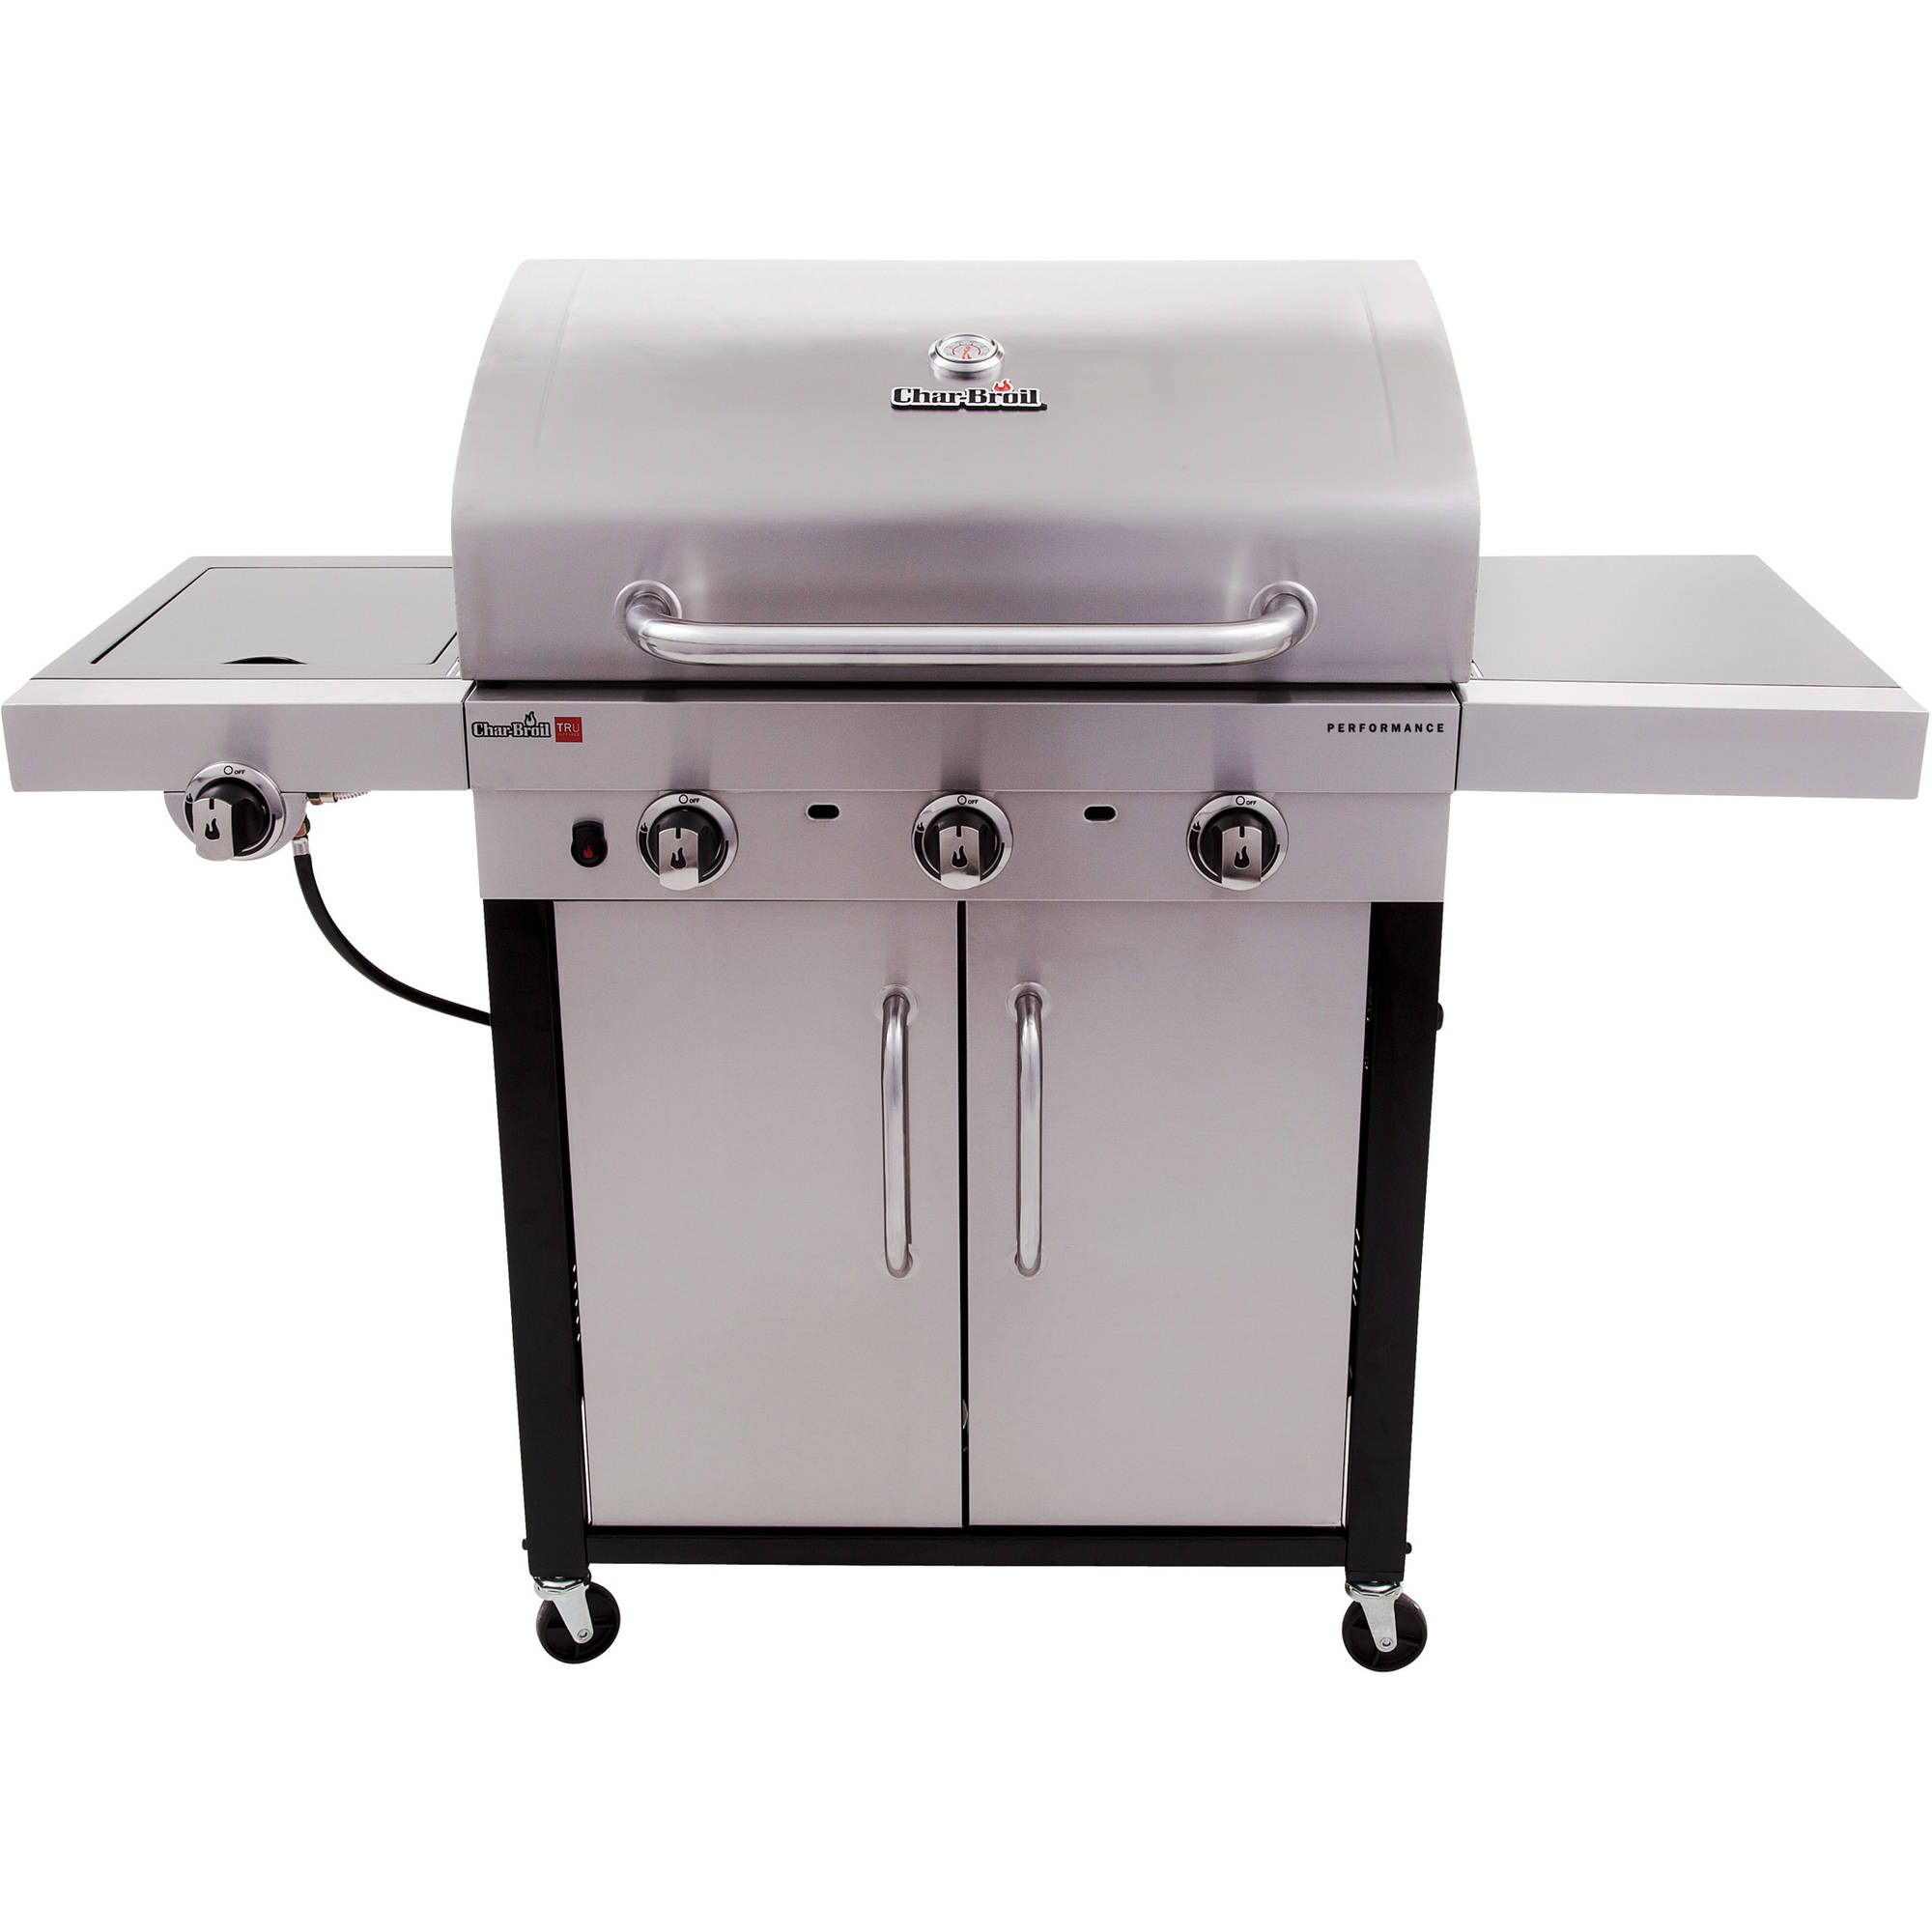 Infrared Bbq Grill Kamisco